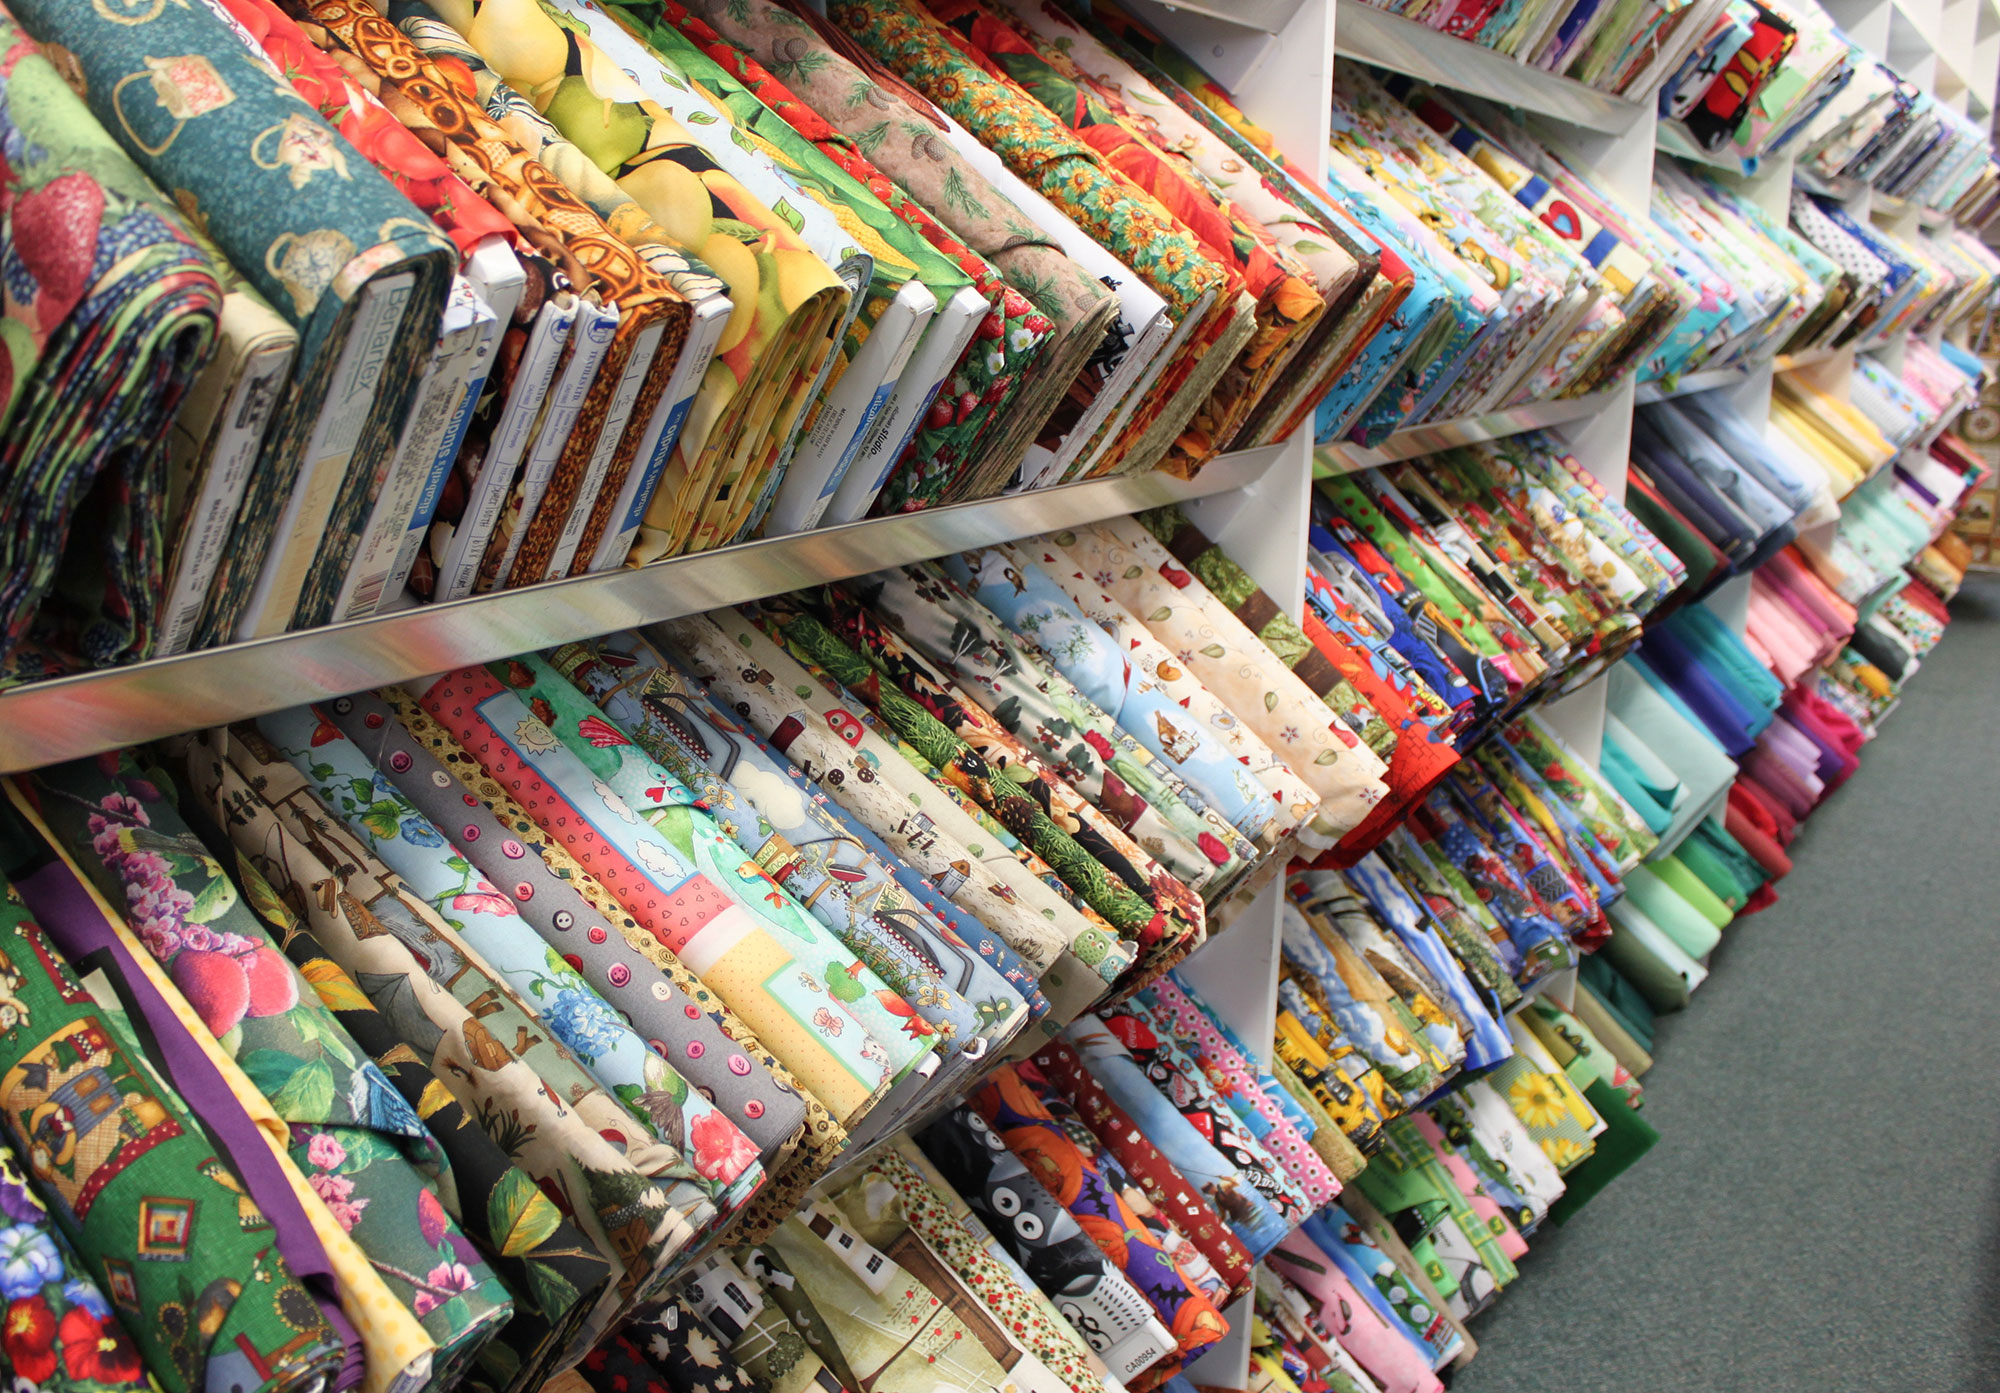 Fabrics - Cotton, Polyester, Pellons, Felt, Baby Bambino and more! We have so many patterns and solid colours to choose from.